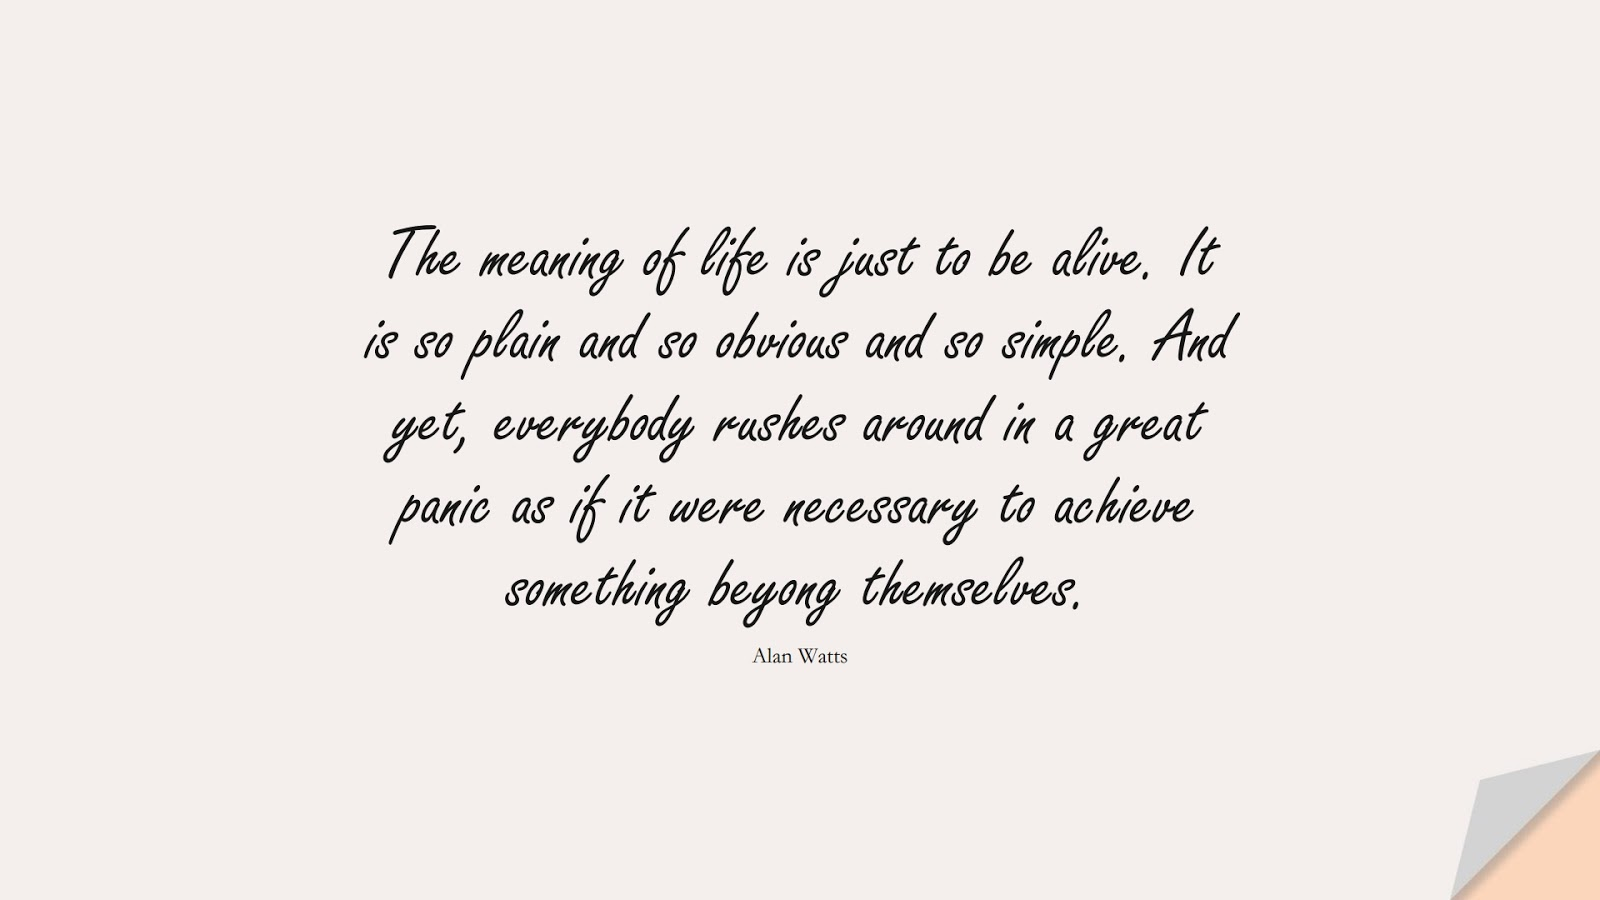 The meaning of life is just to be alive. It is so plain and so obvious and so simple. And yet, everybody rushes around in a great panic as if it were necessary to achieve something beyong themselves. (Alan Watts);  #StoicQuotes